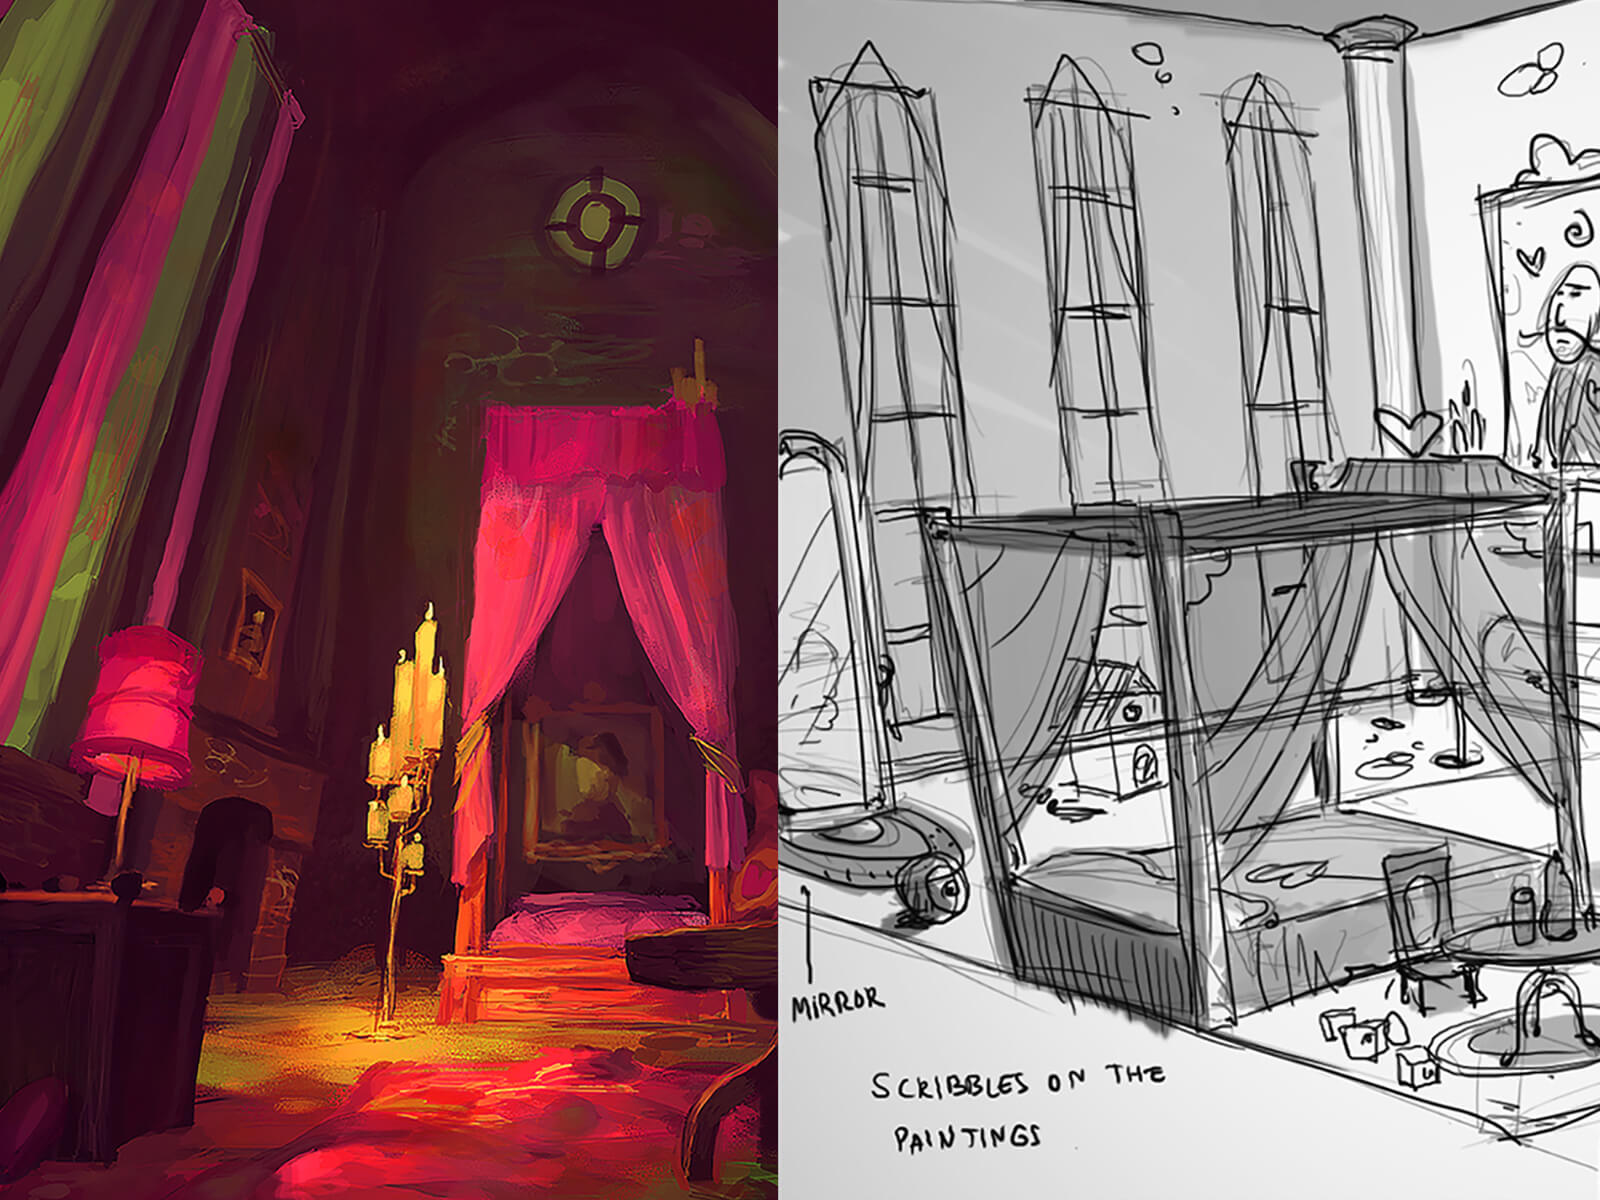 Black-and-white and color sketches of a spooky castle, bedroom, dining room, and laboratory.